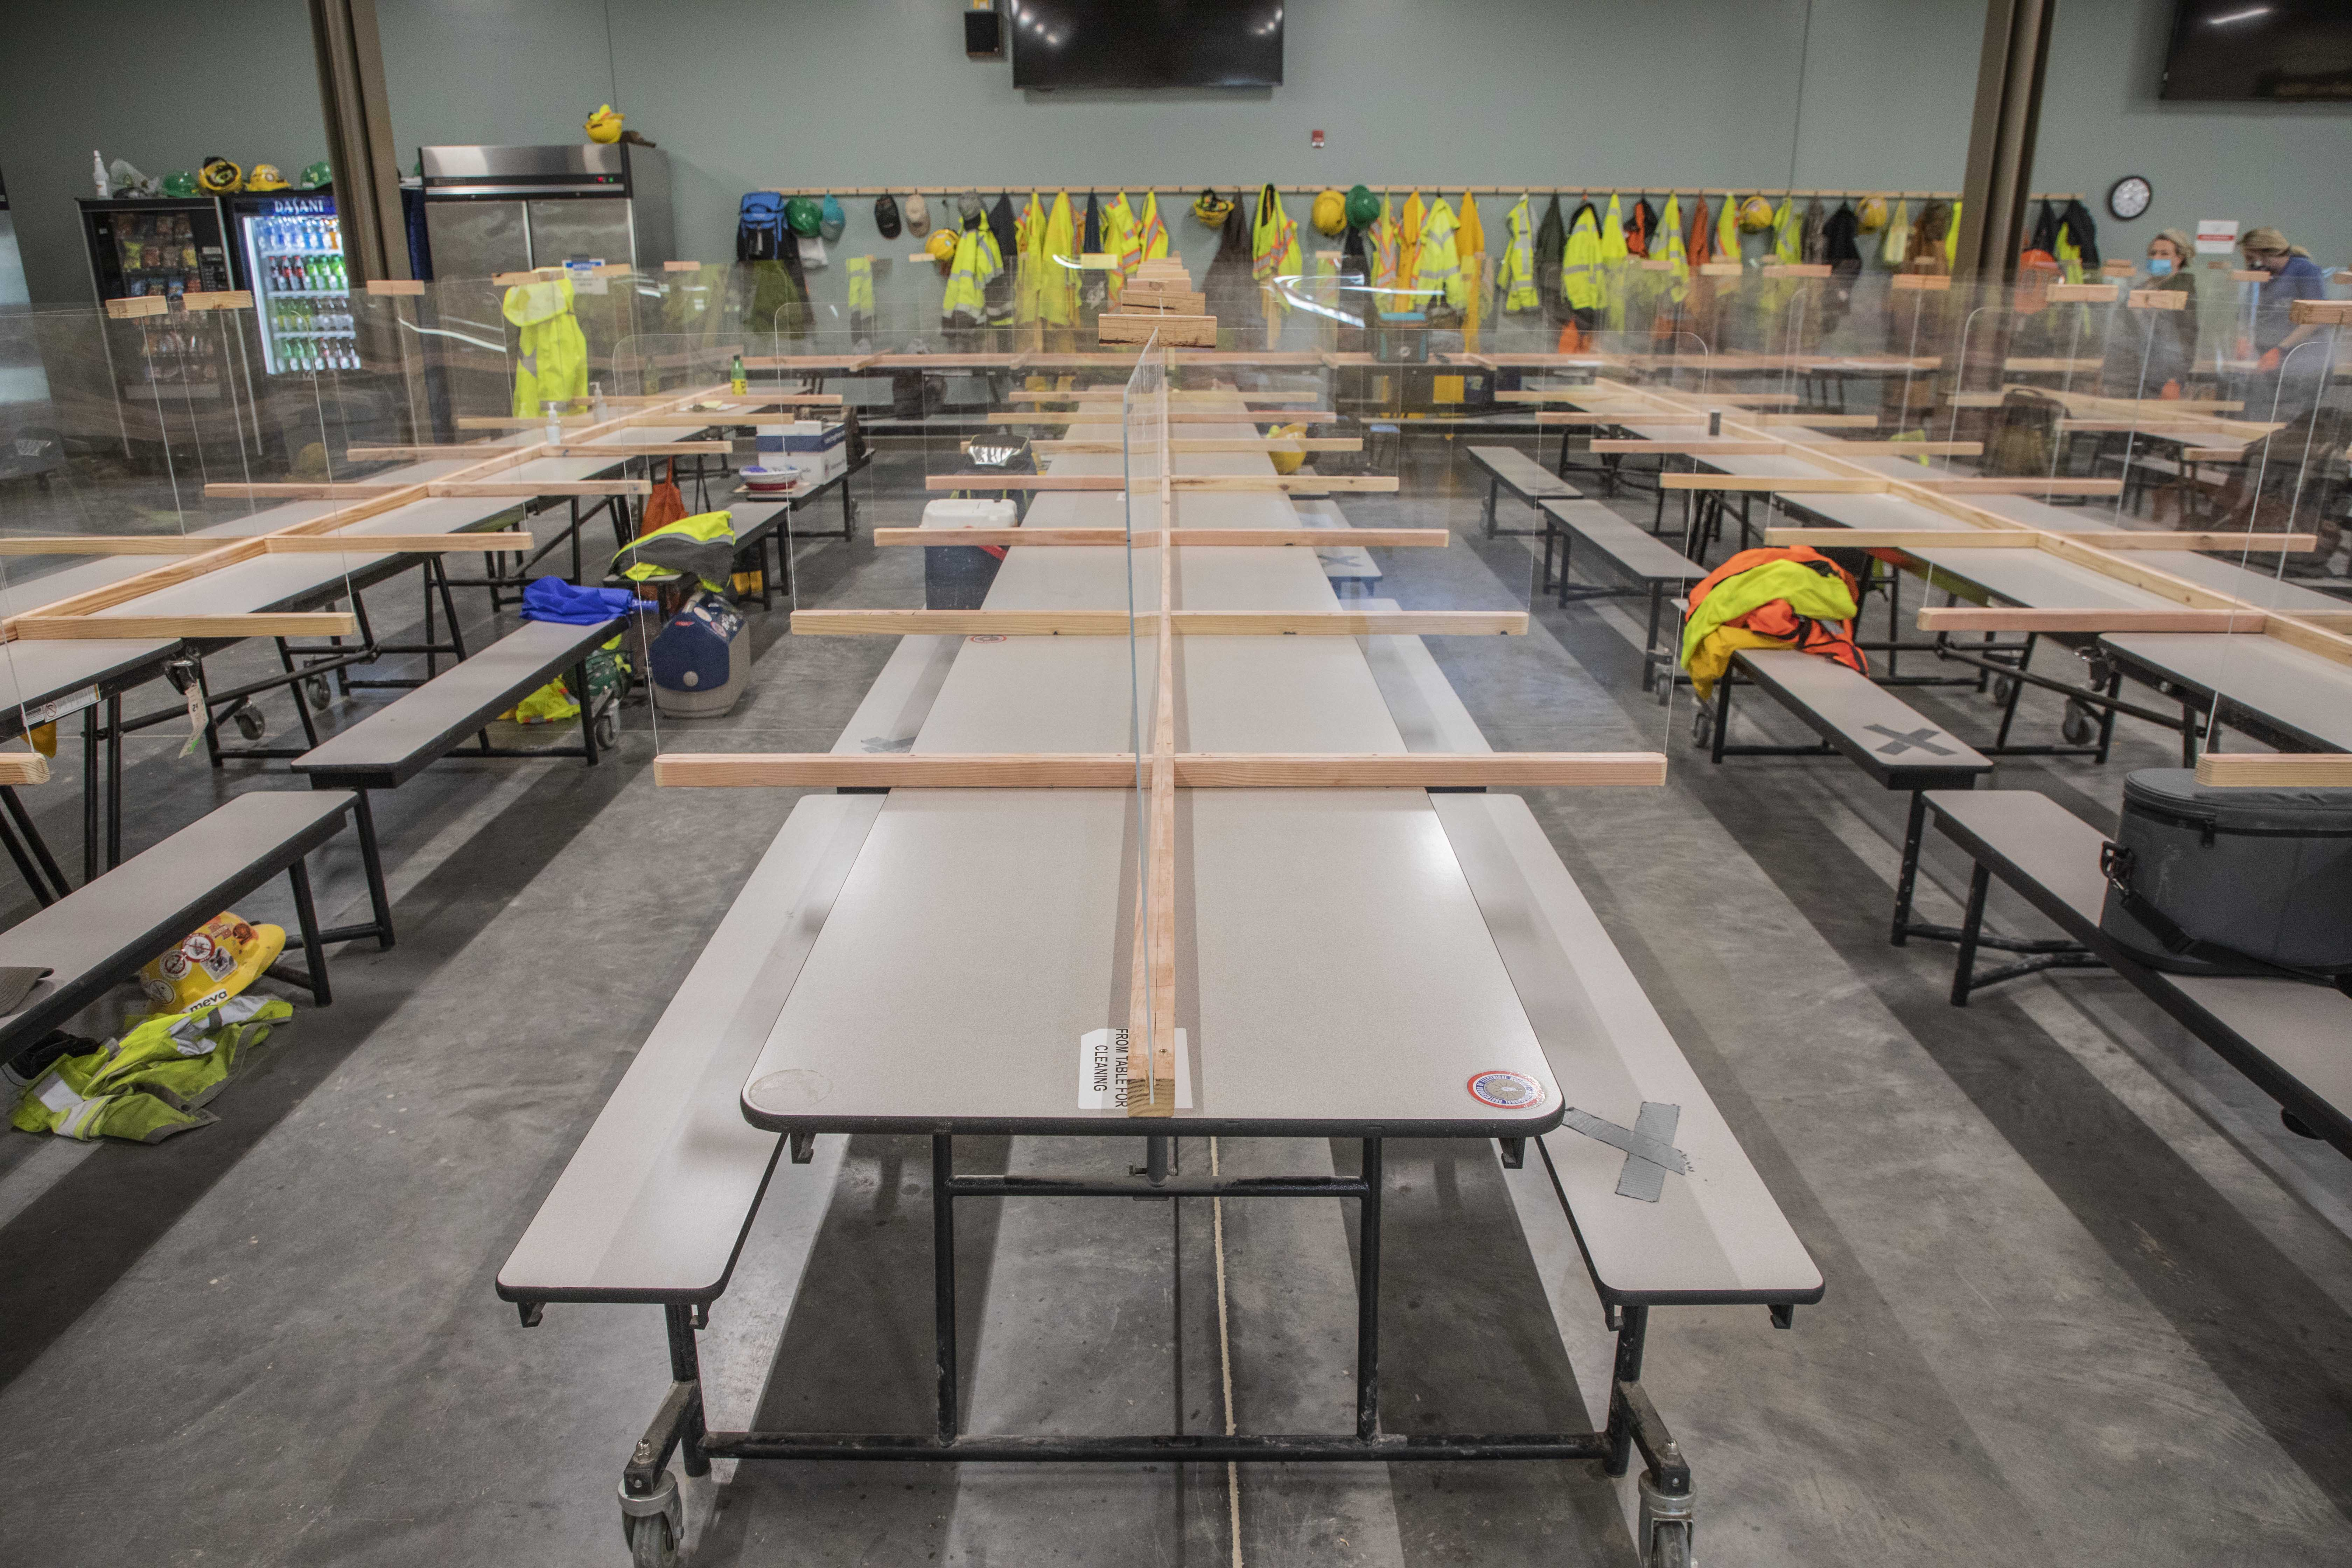 As part of the project's COVID-19 safety actions, plexiglass partitions were installed and placed on breakroom tables to maximize social distancing while eating.